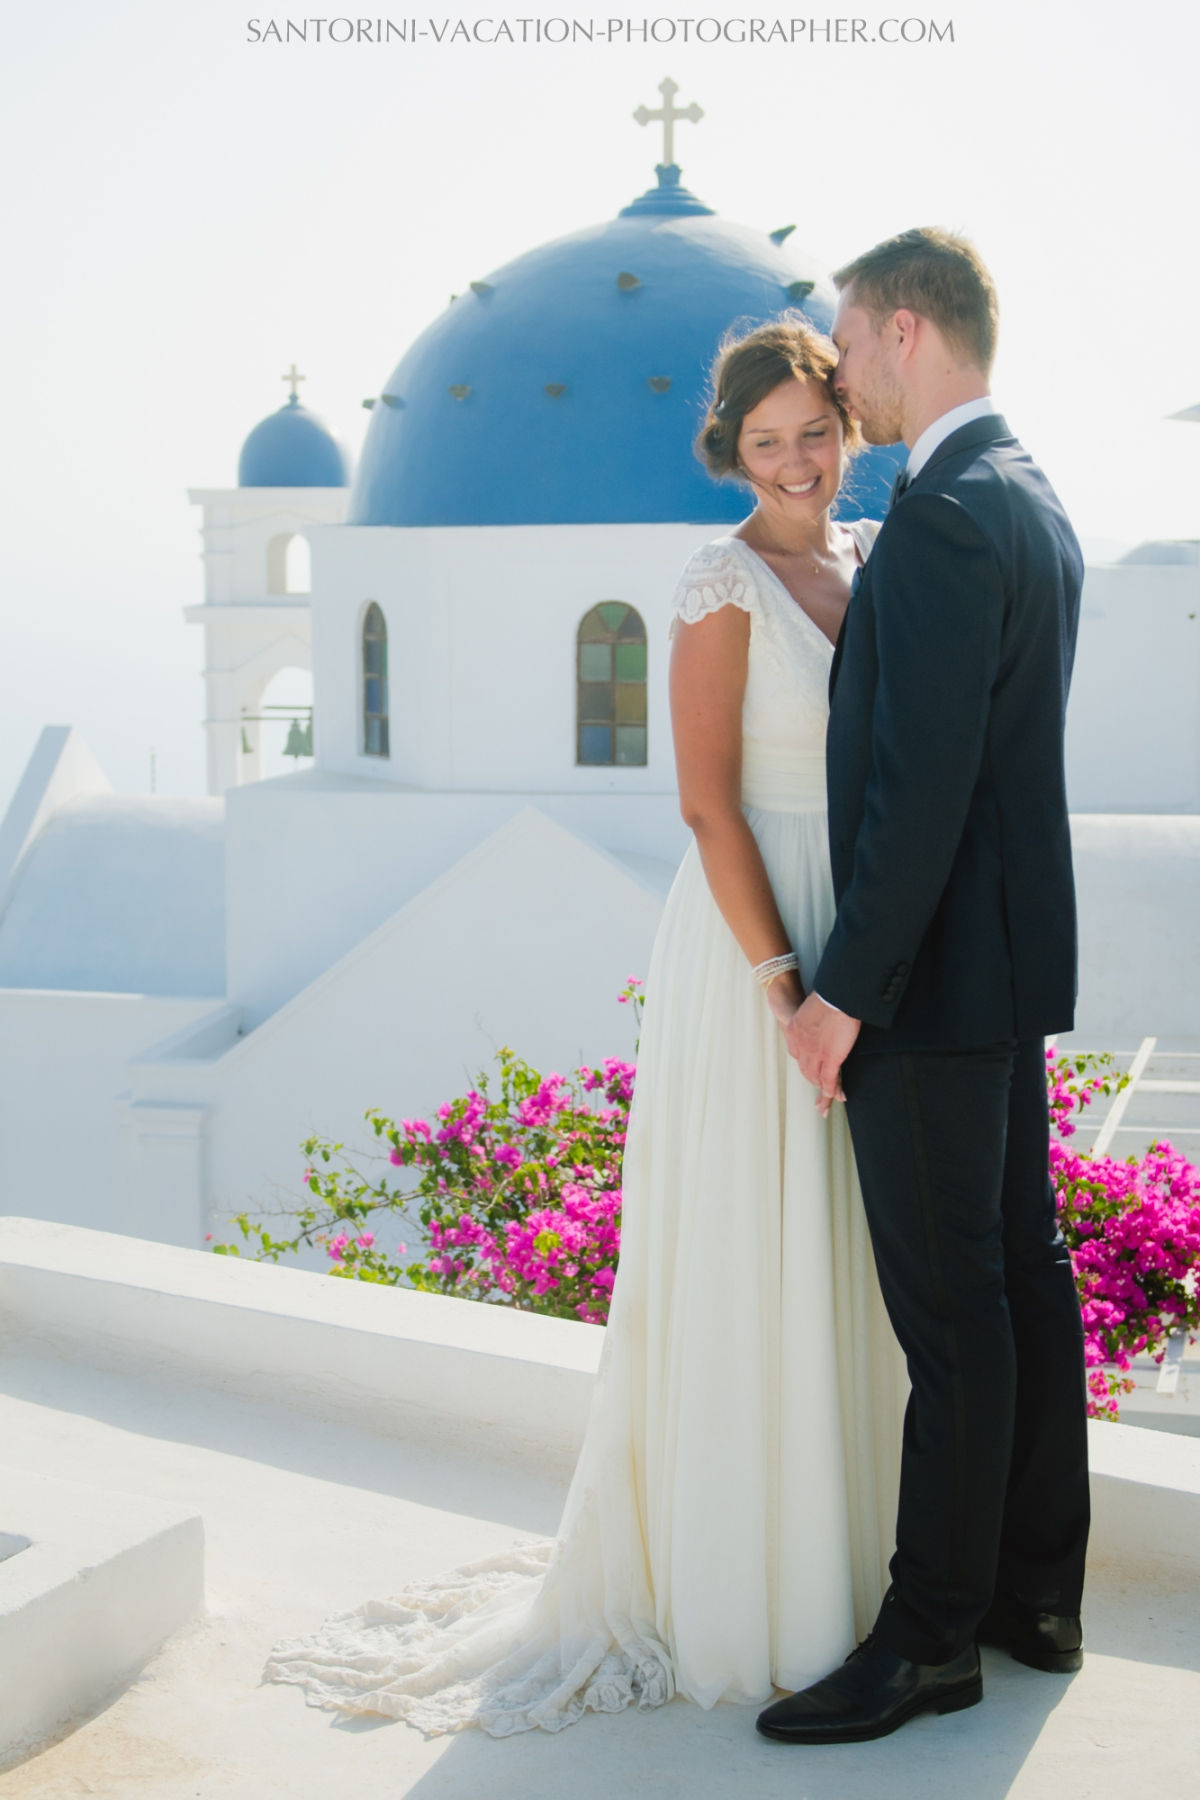 photo-shoot-santorini-blue-domes-post-wedding-destination-3